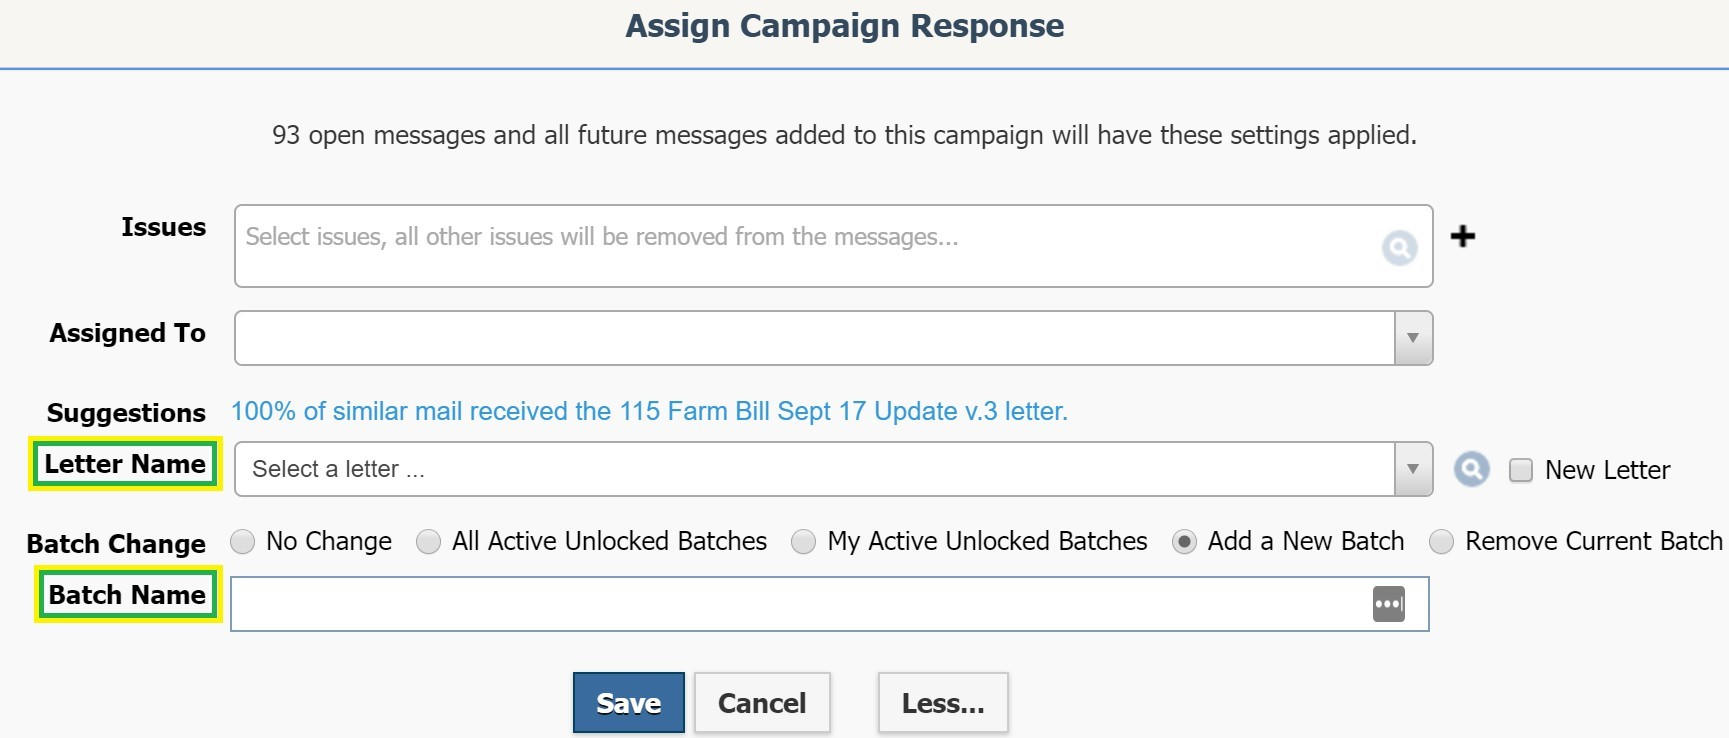 Assign Campaign Response